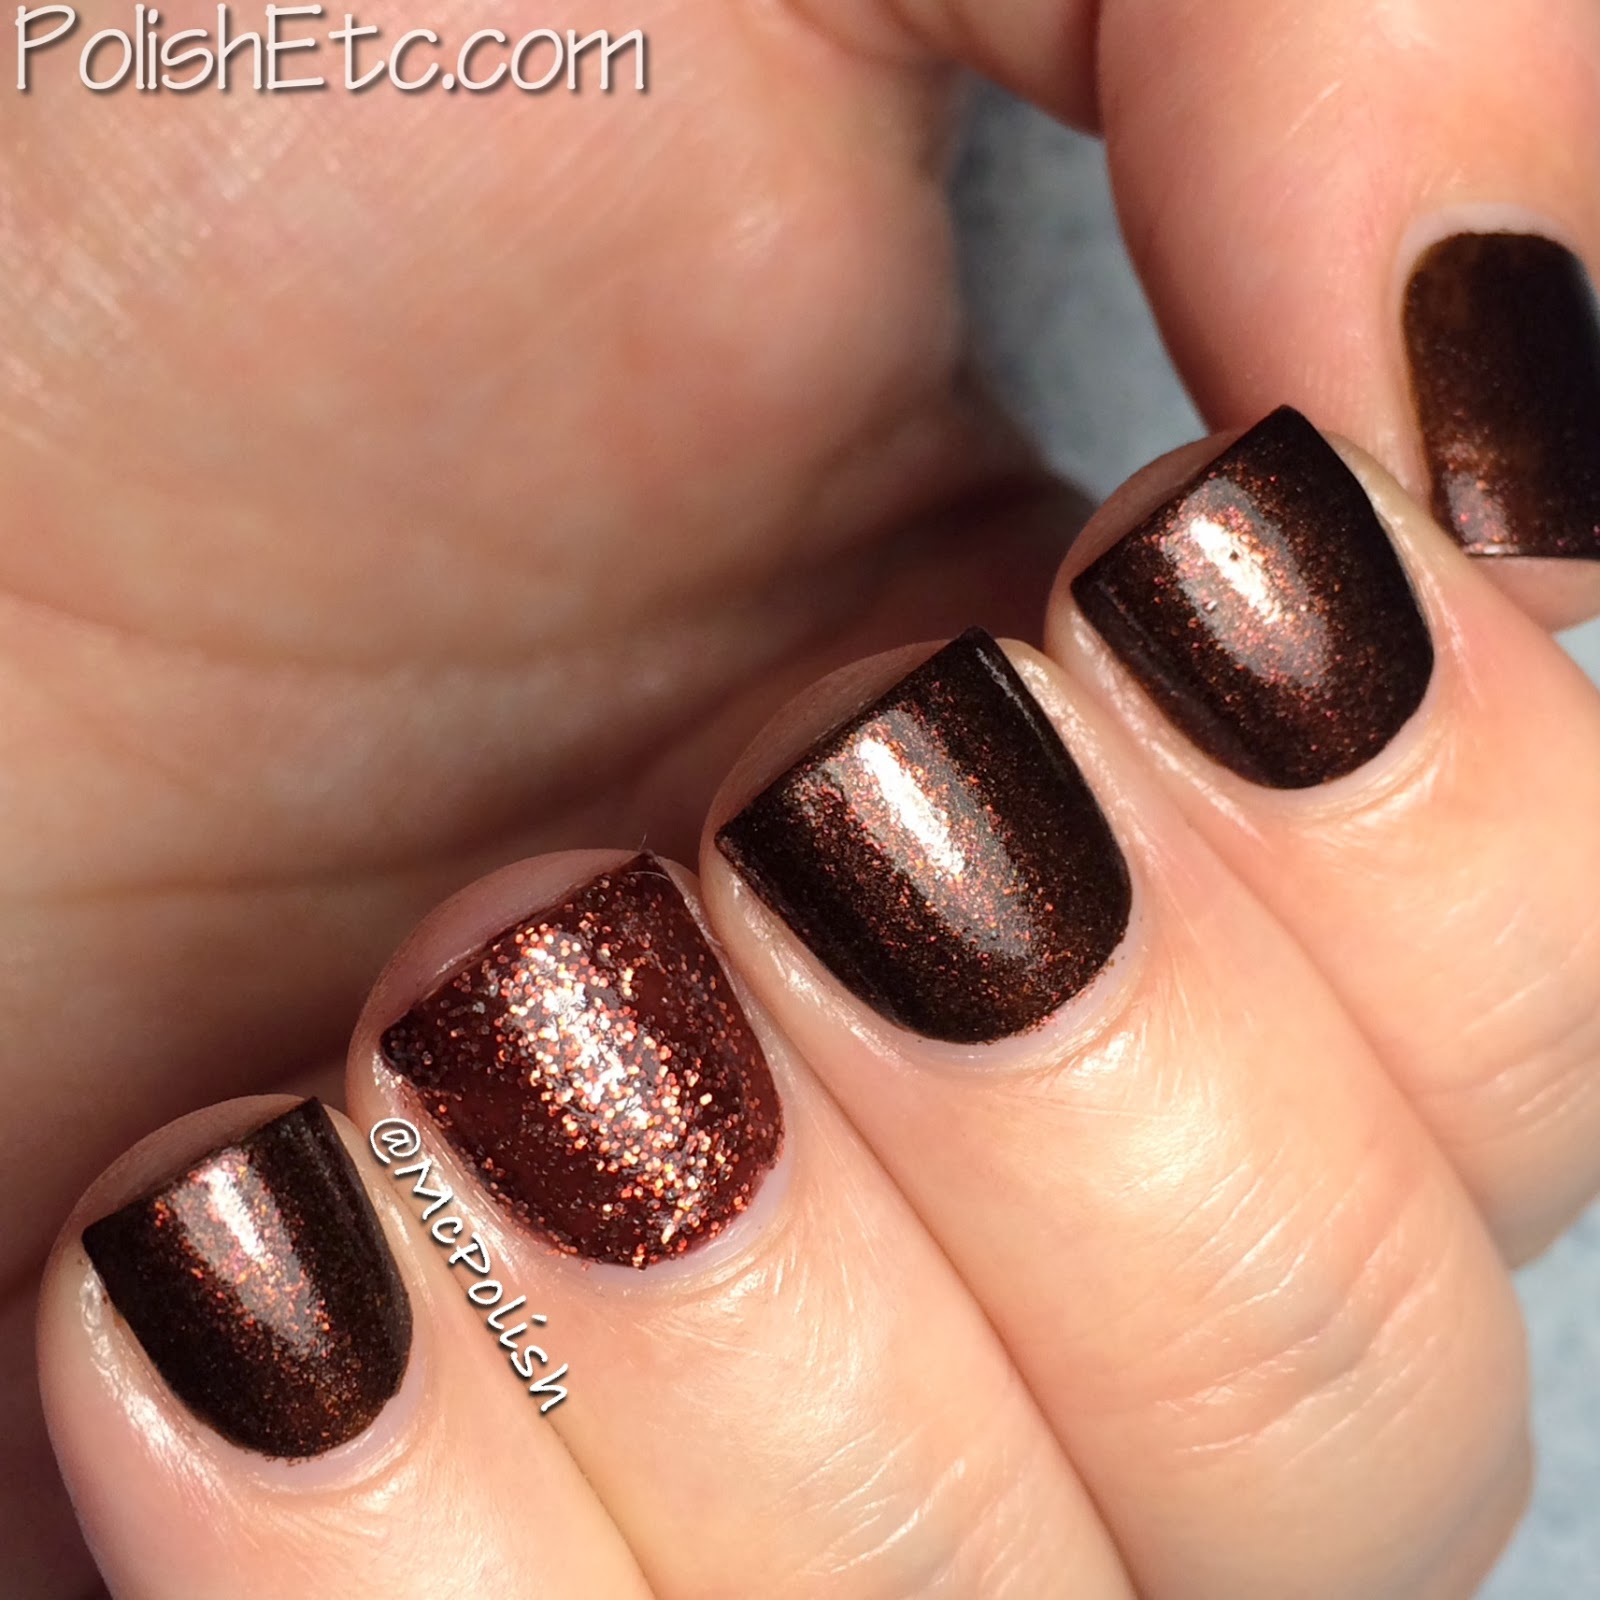 Revlon Parfumerie scented nail polish in Autumn Spice